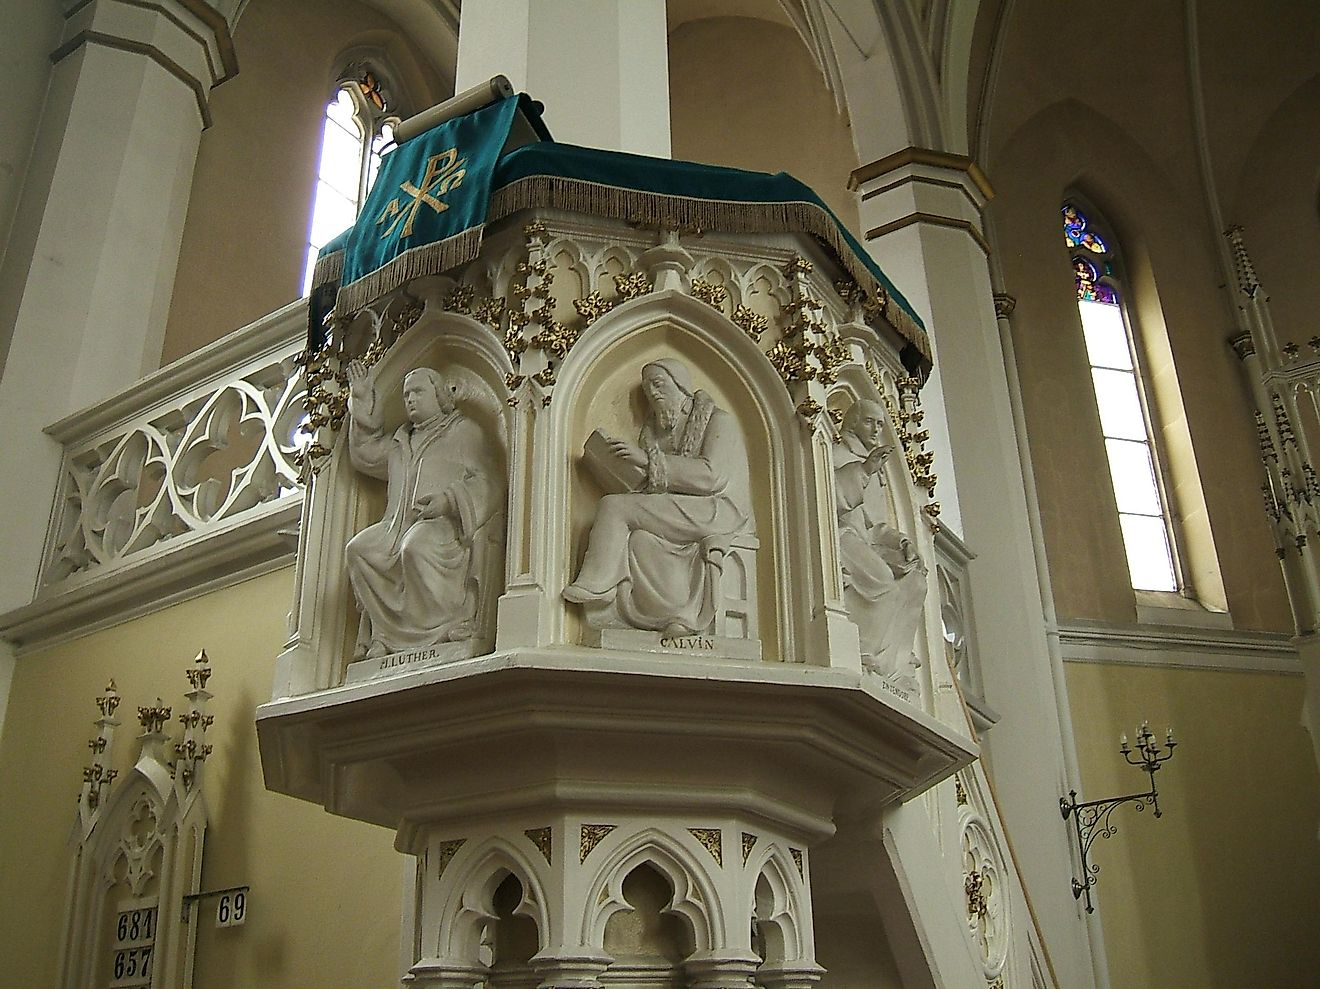 Martin Luther and John Calvin, key proponents of the Protestant Reformation are depicted on a church pulpit.